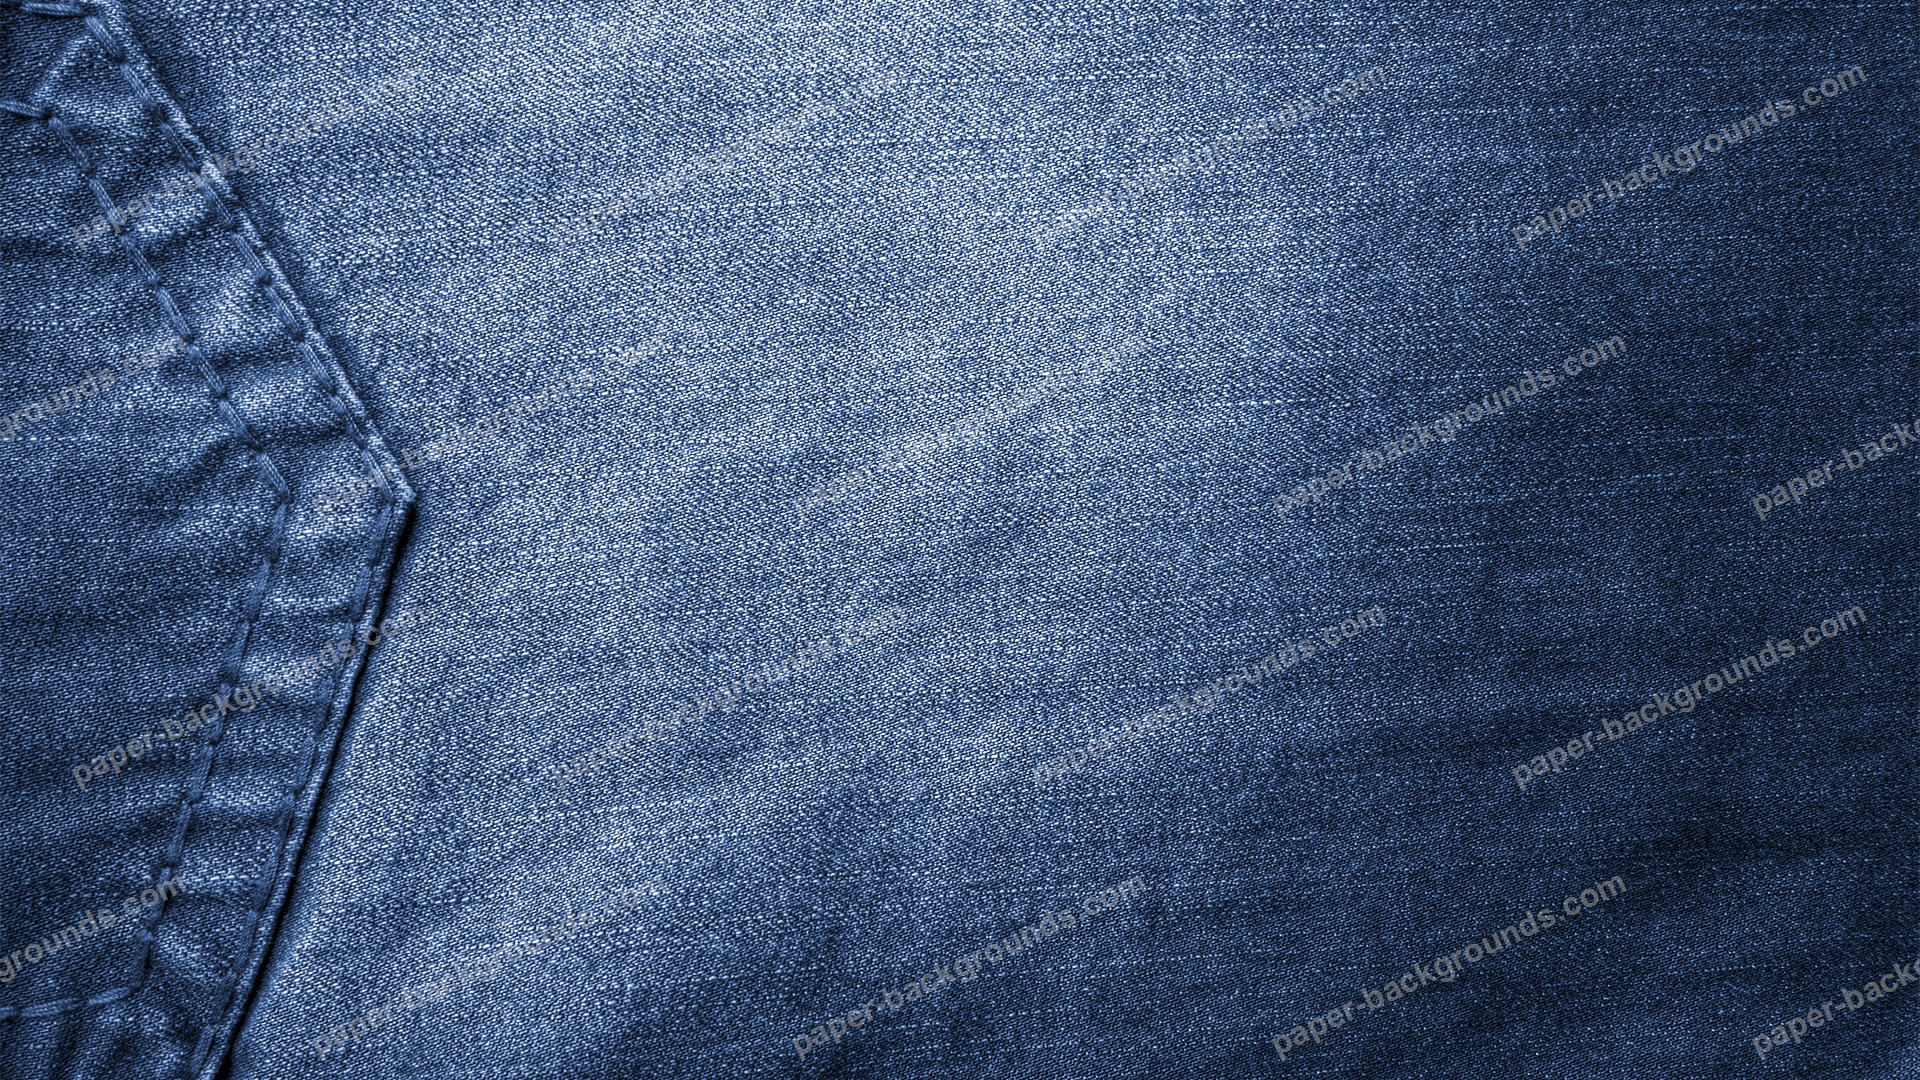 Vintage Blue Jeans With Pocket Background HD 1920 x 1080p